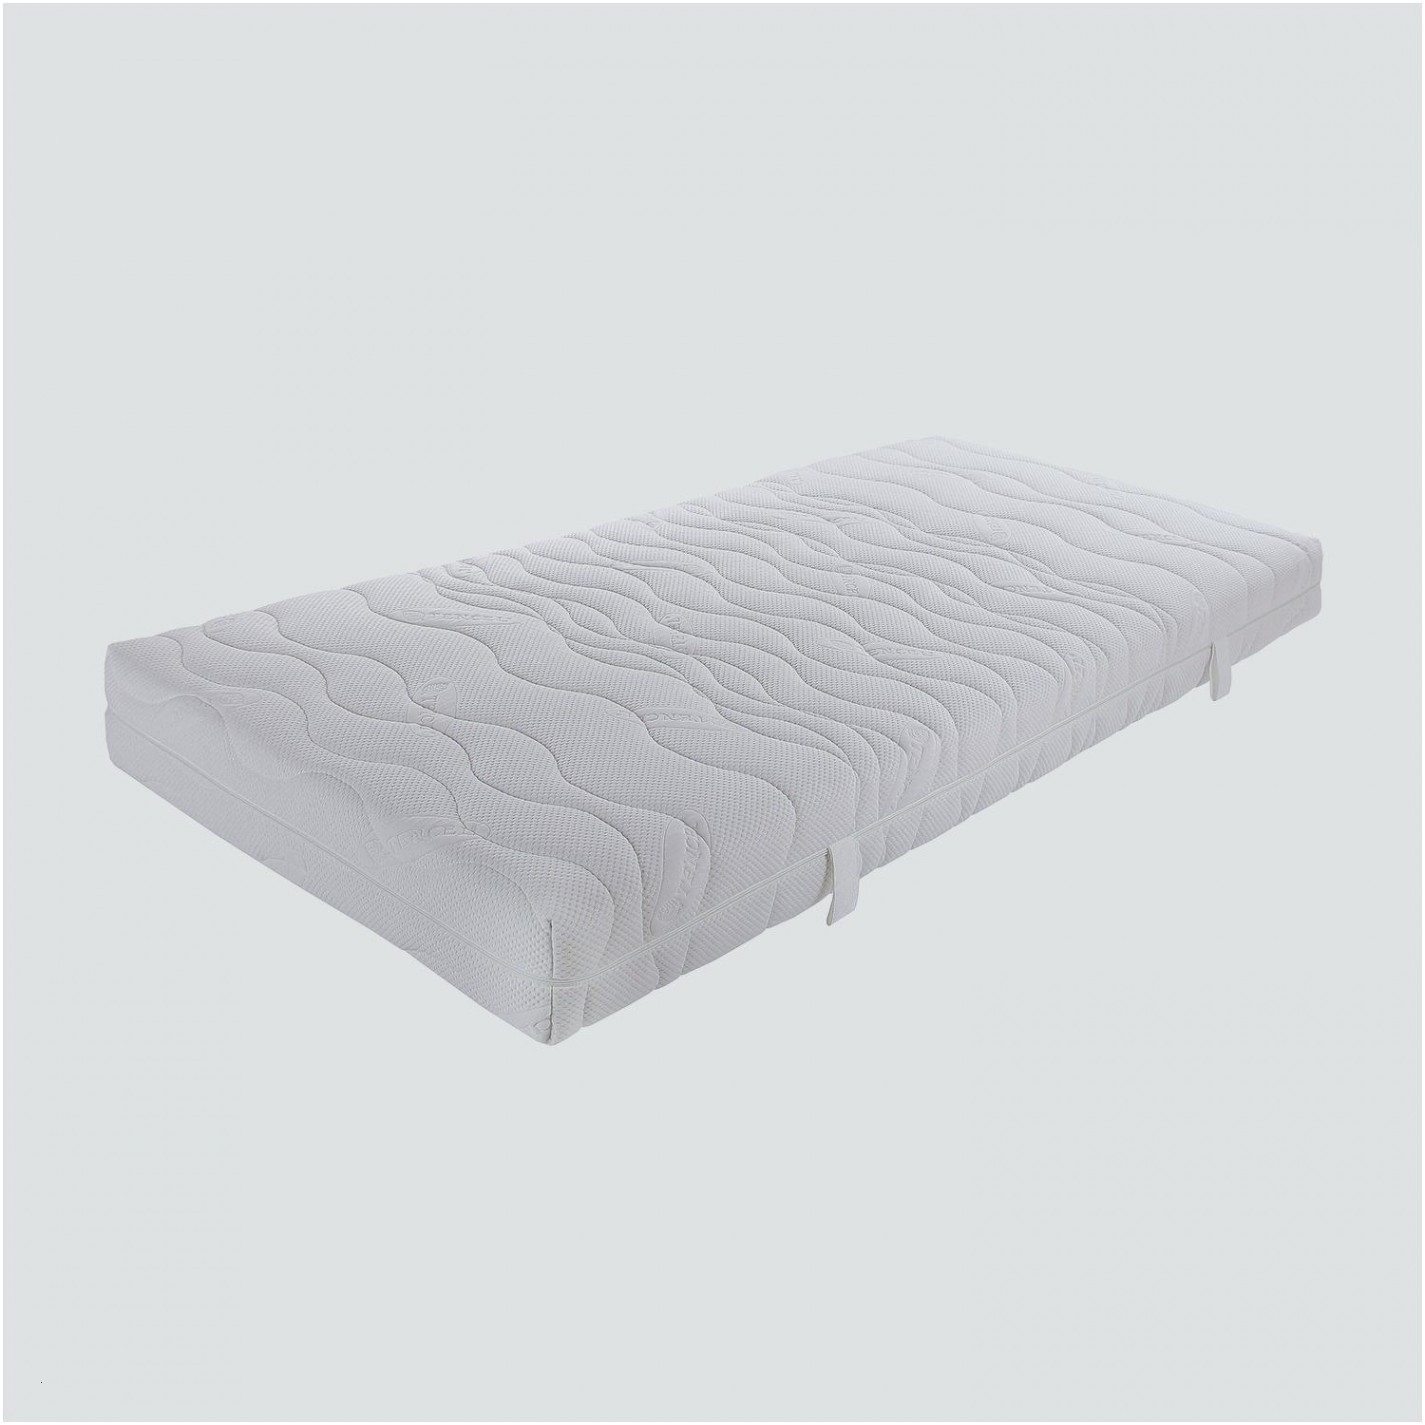 Talalay Matras Ikea Morgedal Memory Foam Mattress Reviews Adinaporter